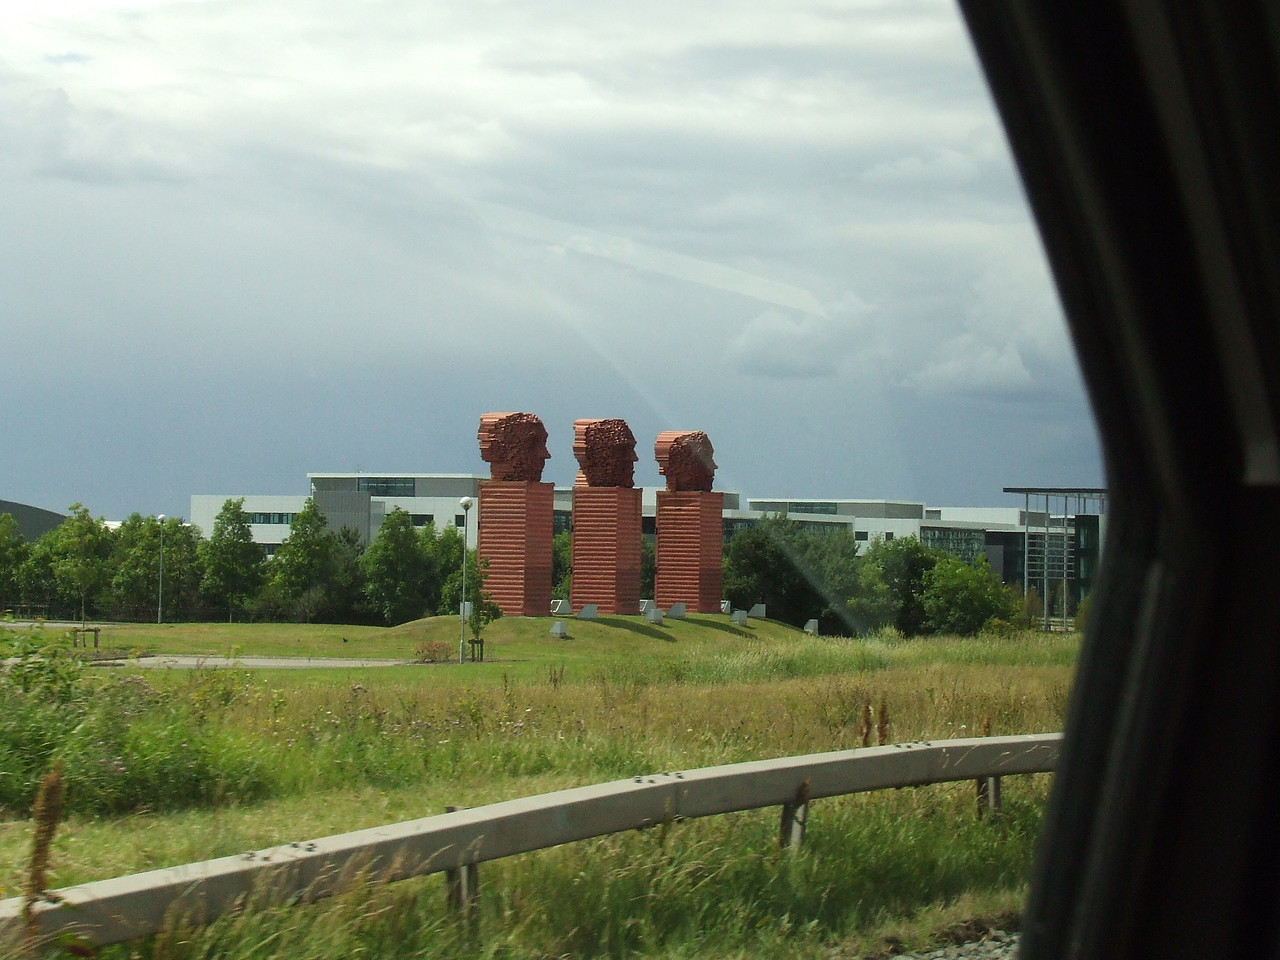 Passing by one of the many weird structures that dot the M8 in Cumbernauld